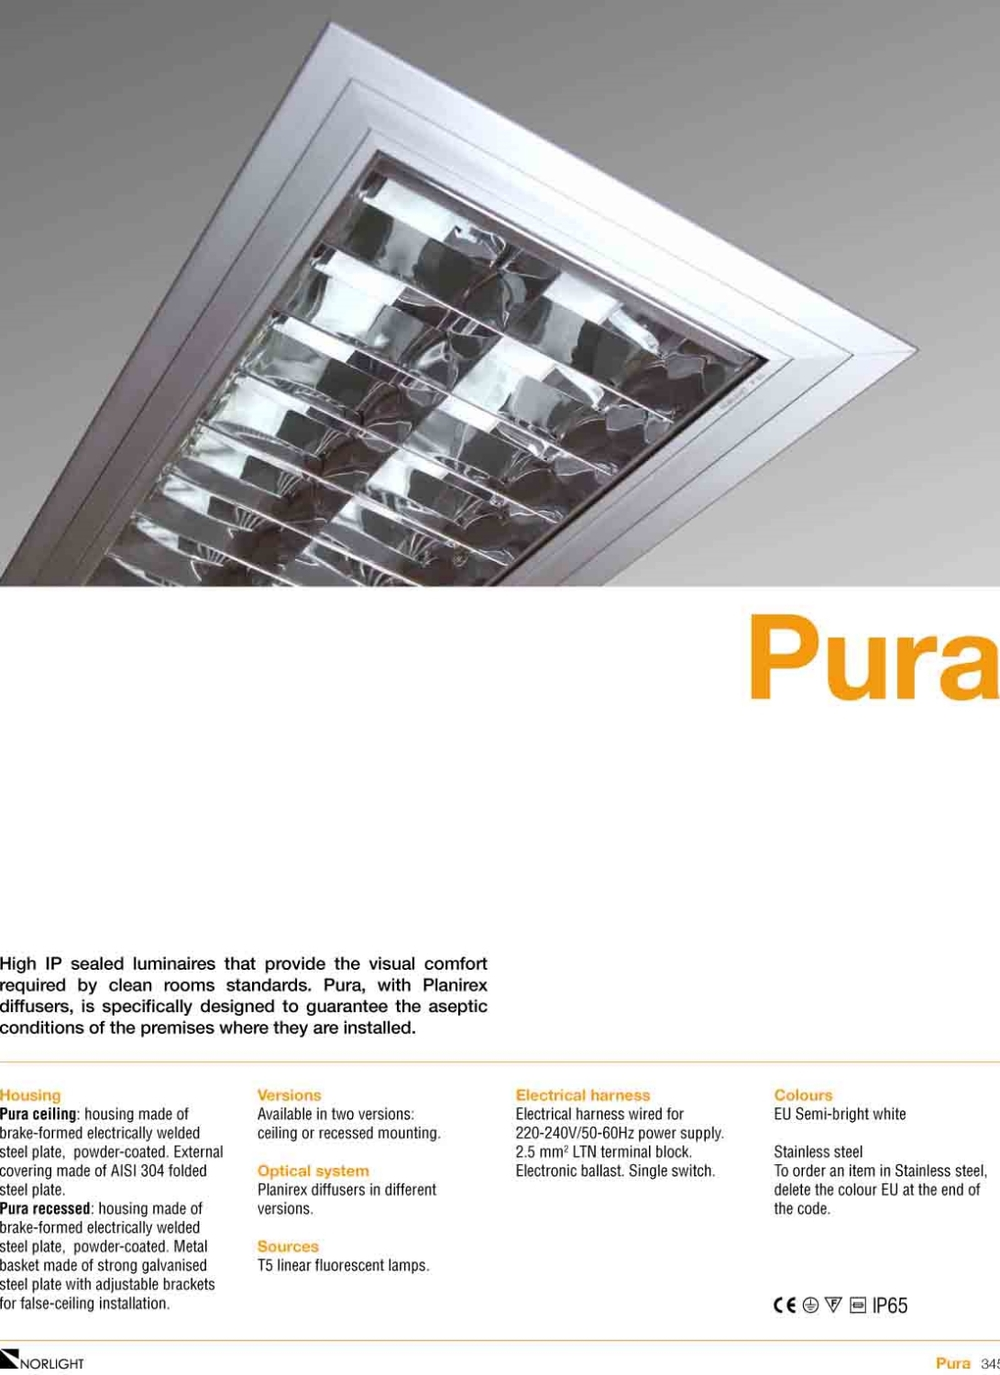 105_Norlight_Catalogue_2012_Pura-346.jpg